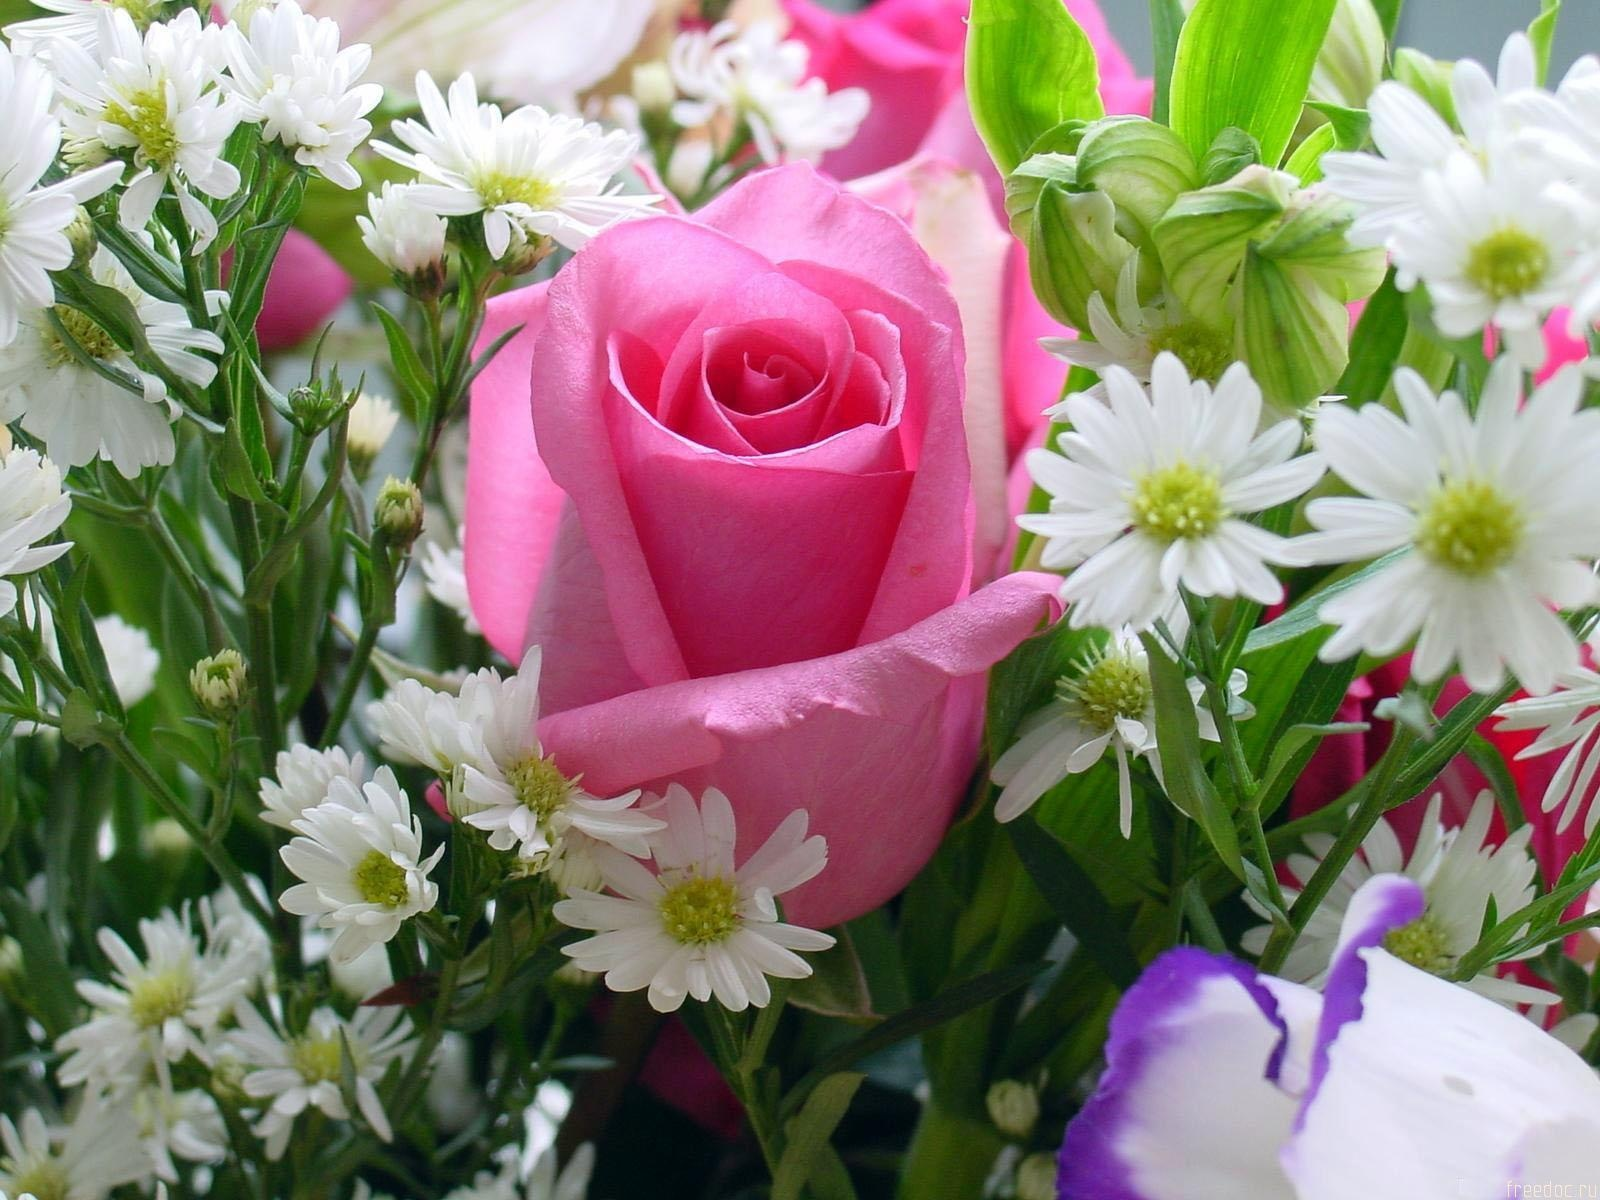 Pink Rose Wallpapers In Jpg Format For Free Download